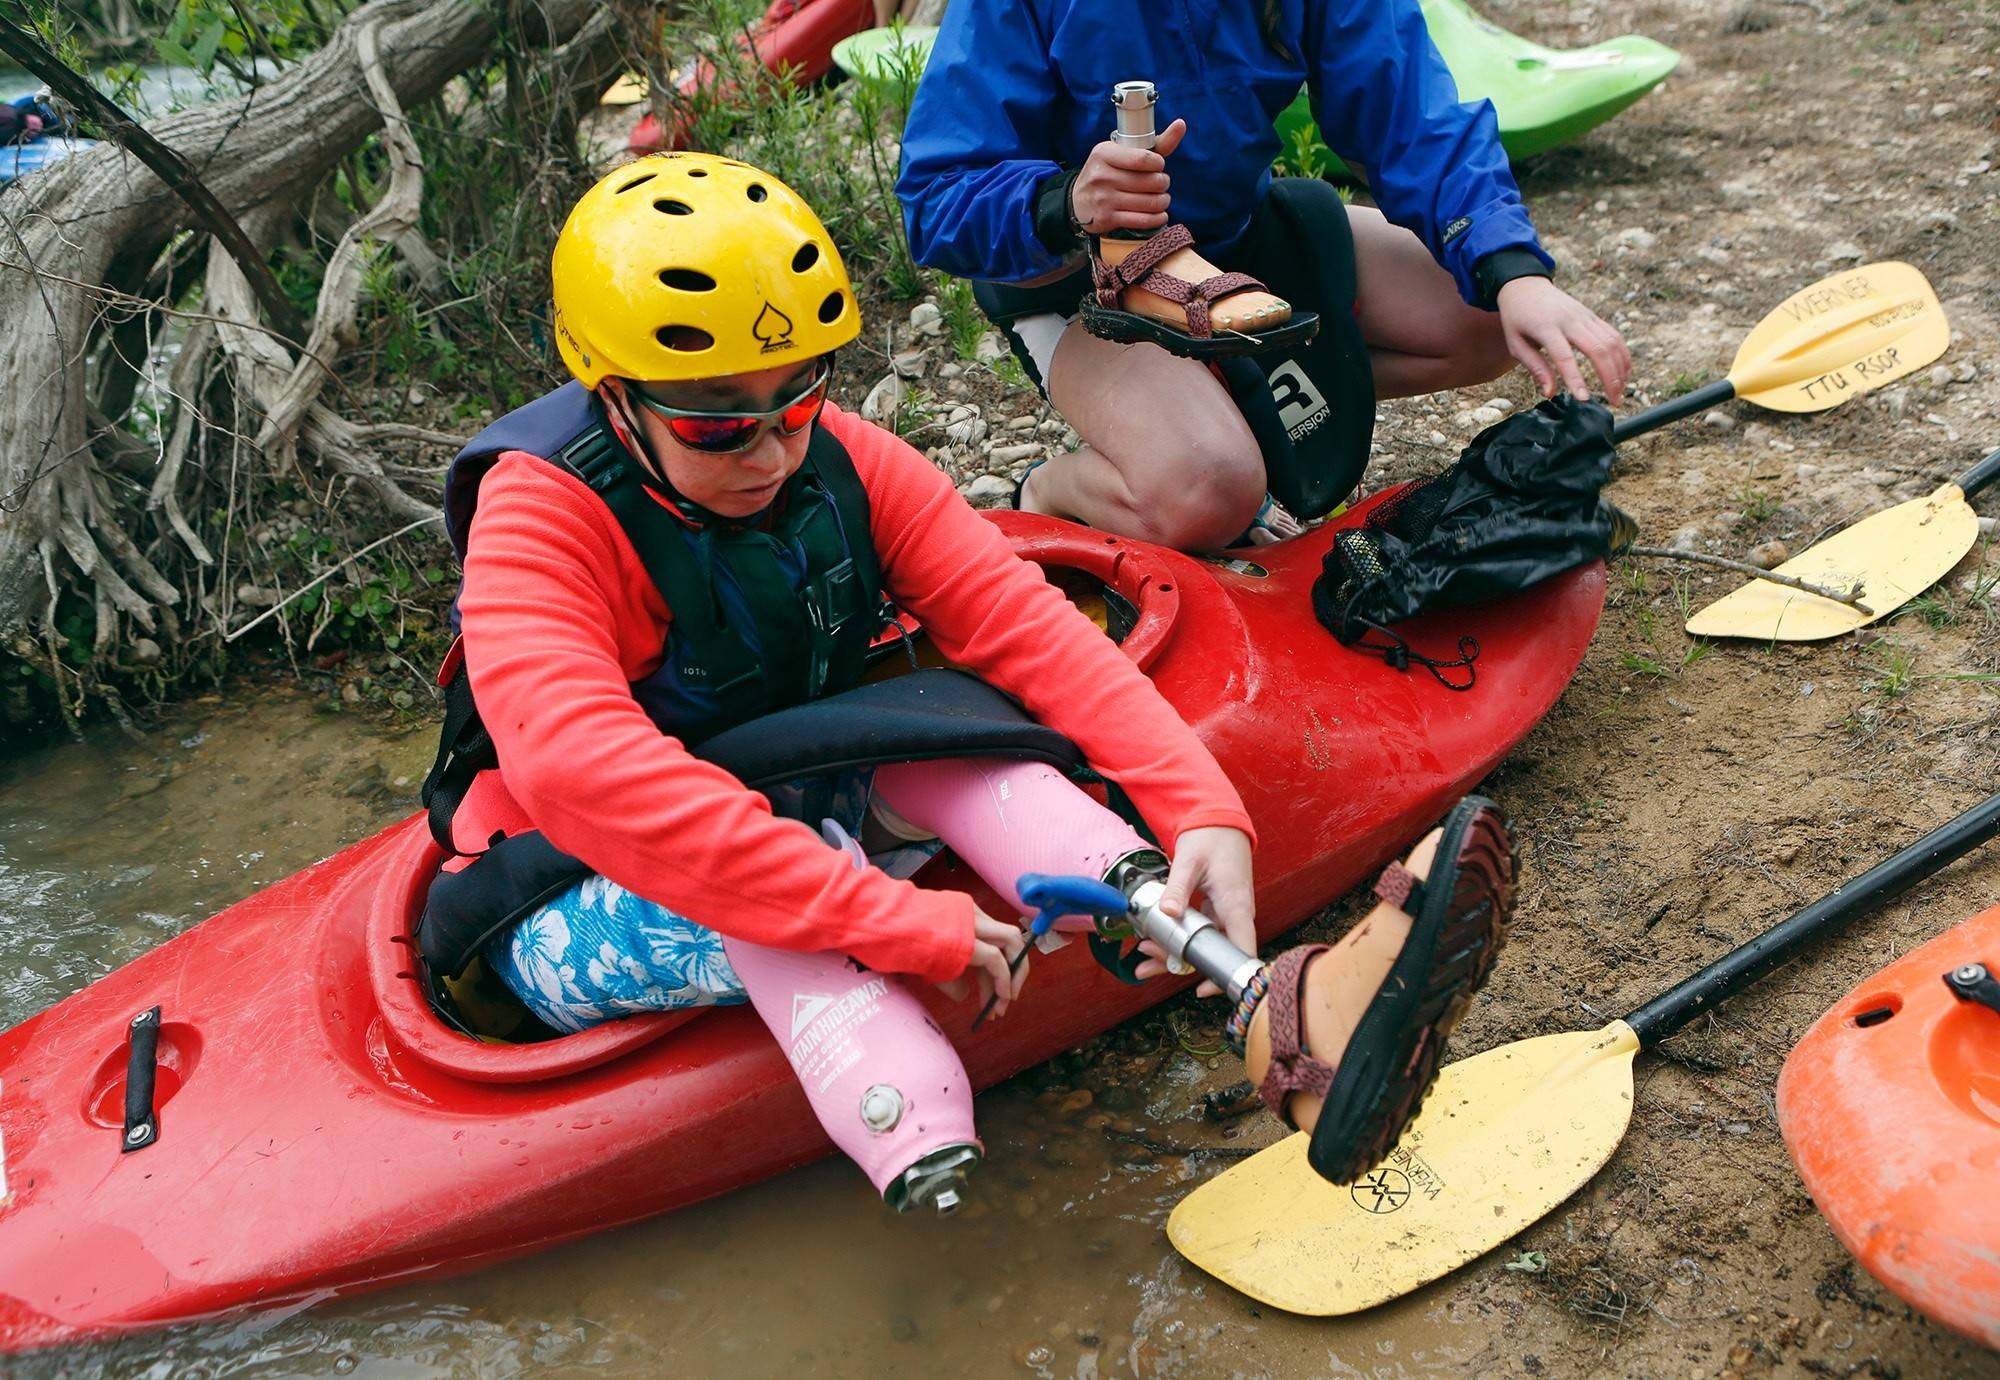 Lacey Phipps takes off her prosthetic feet during a break from kayaking on the San Marcos River in Texas. Born with club feet, she had them removed after surgeries left her in constant pain.